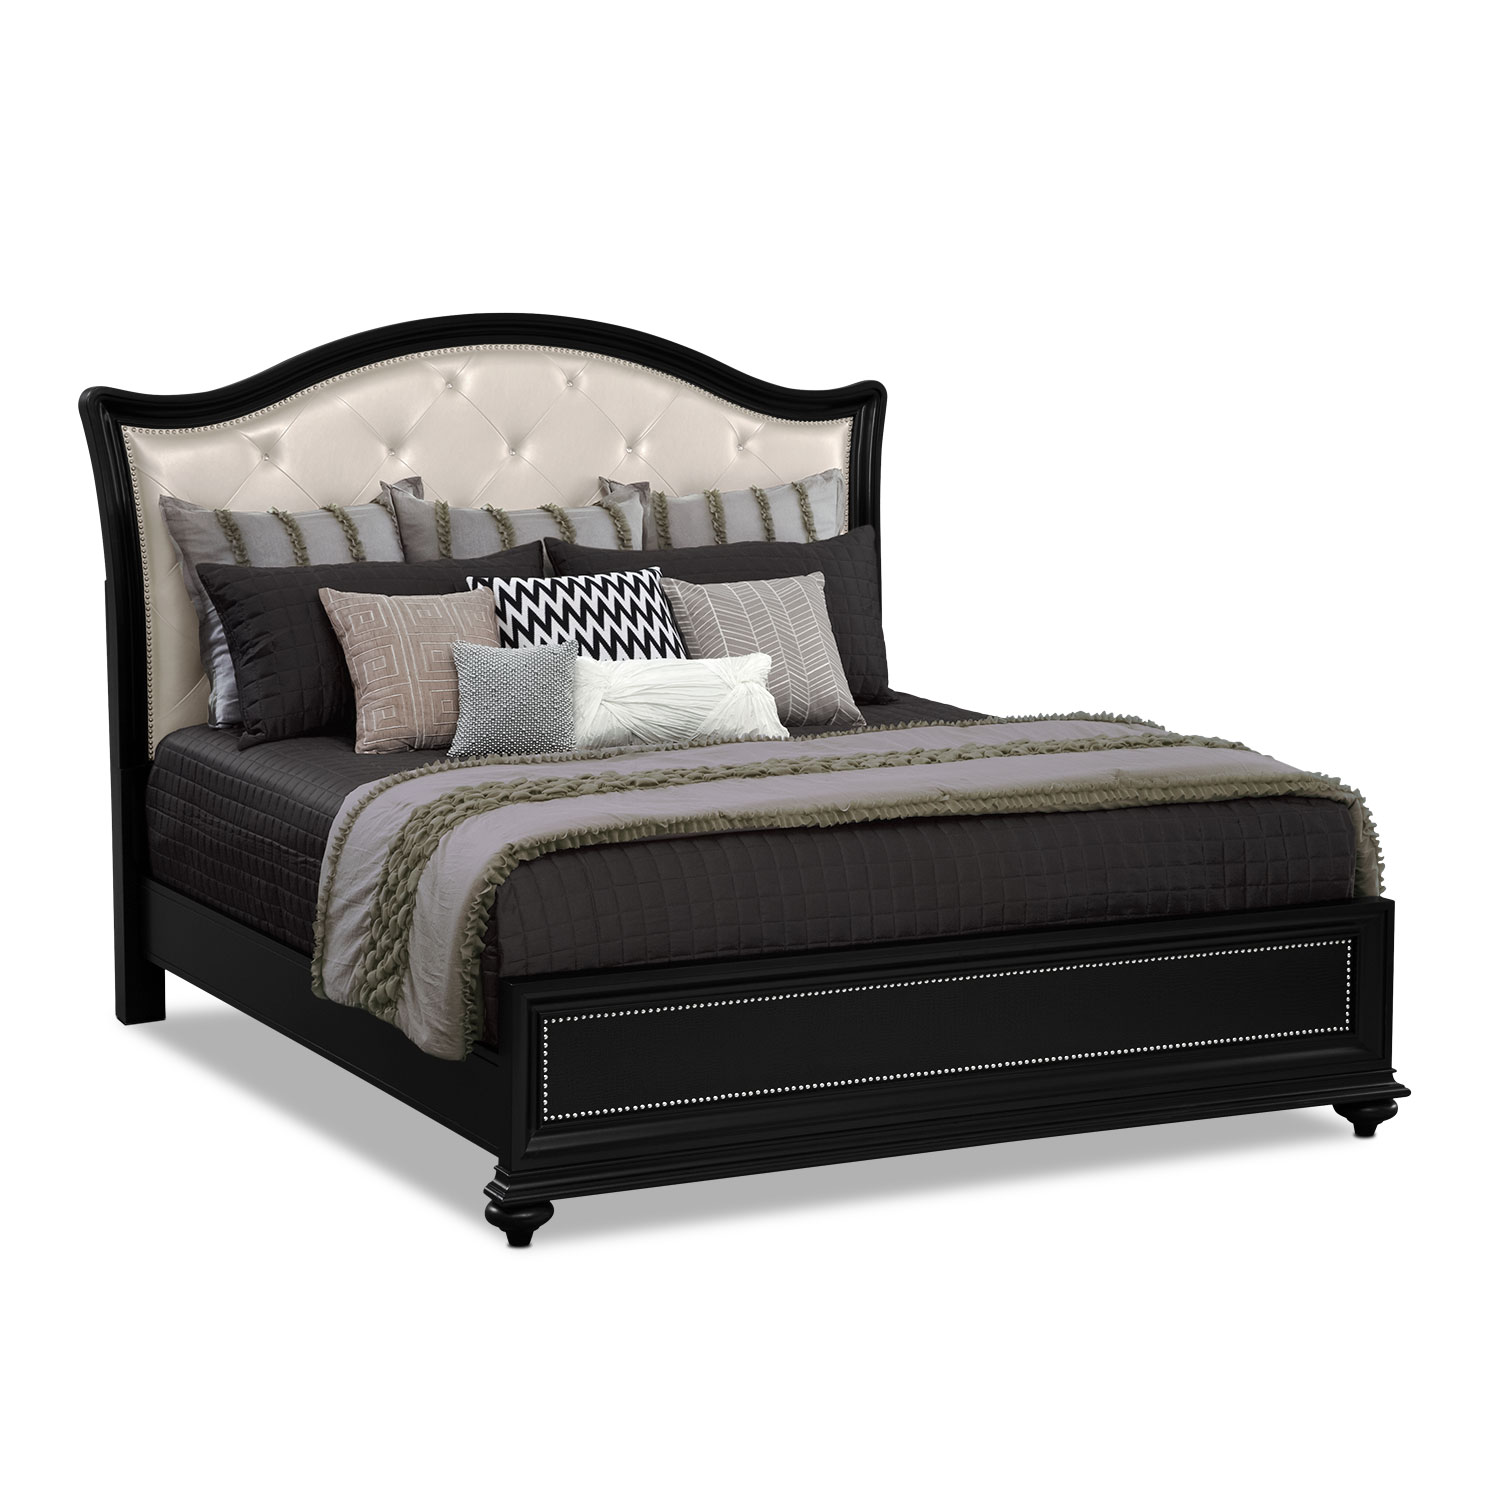 Bedroom Furniture - Marilyn King Bed